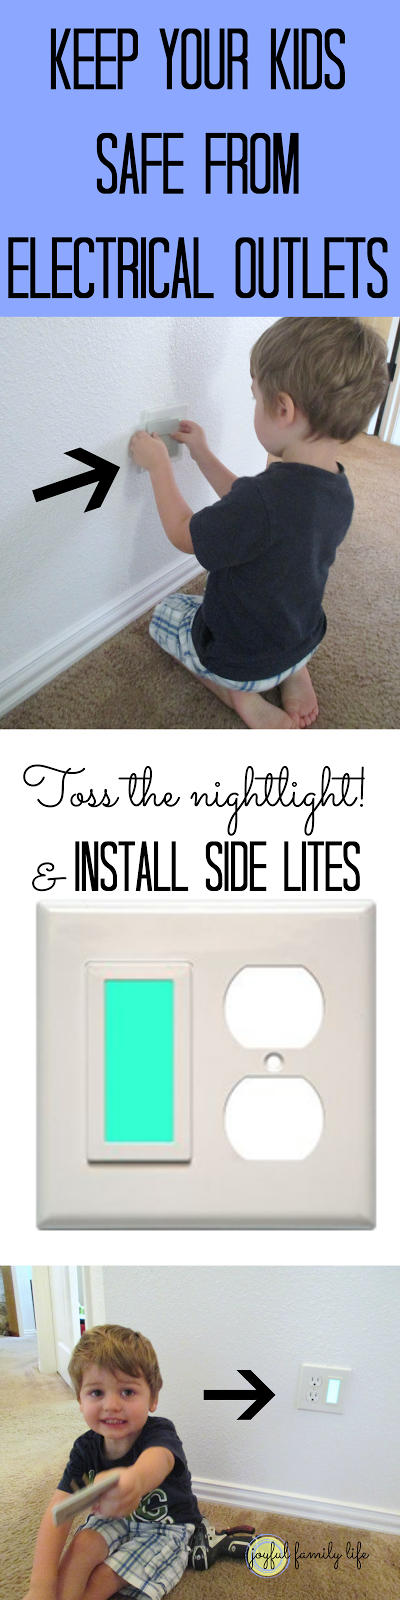 Use a Side Lite, it's safer than a traditional nightlight. See how to install it on the Joyful Family Life blog. Order one at http://store.limelite.com/category_s/1817.htm